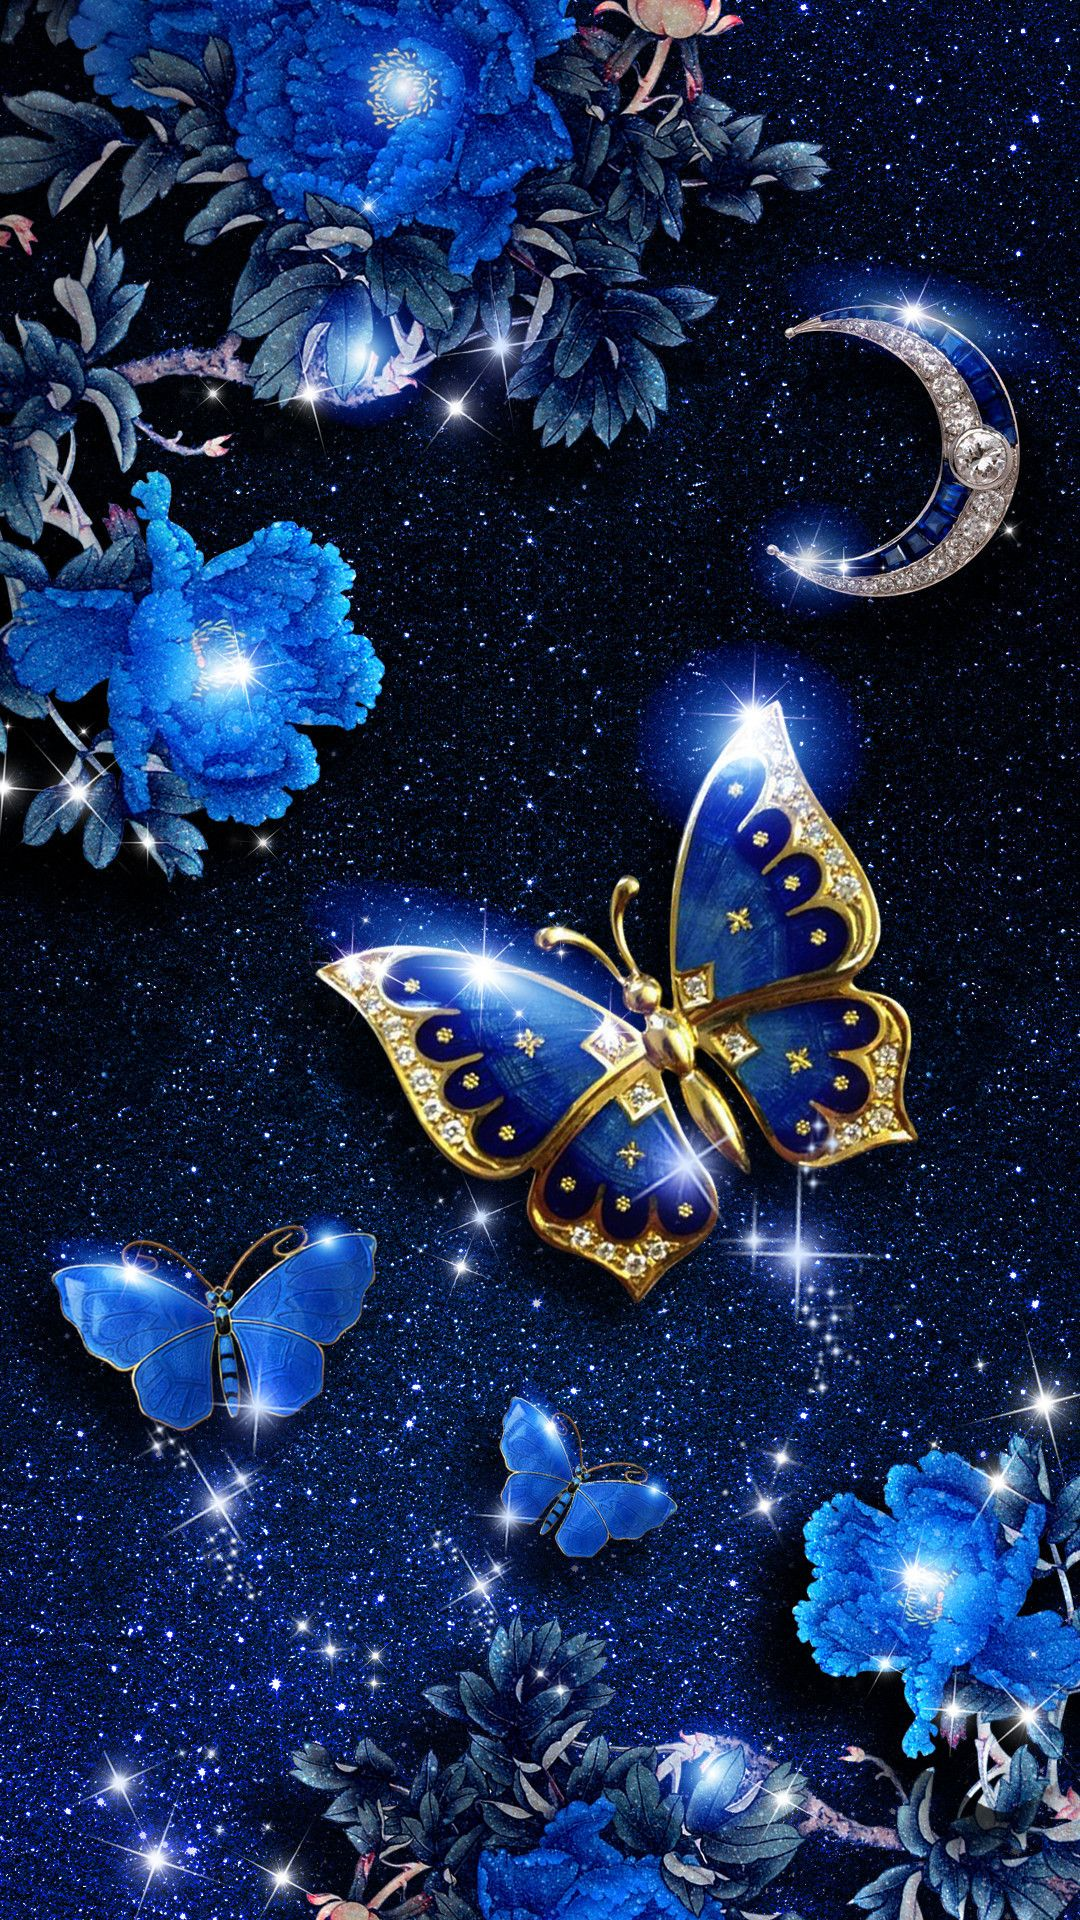 New Android Wallpaper Blue 1080x1920 For Hd Blue Butterfly Wallpaper Butterfly Wallpaper Iphone Android Wallpaper Blue